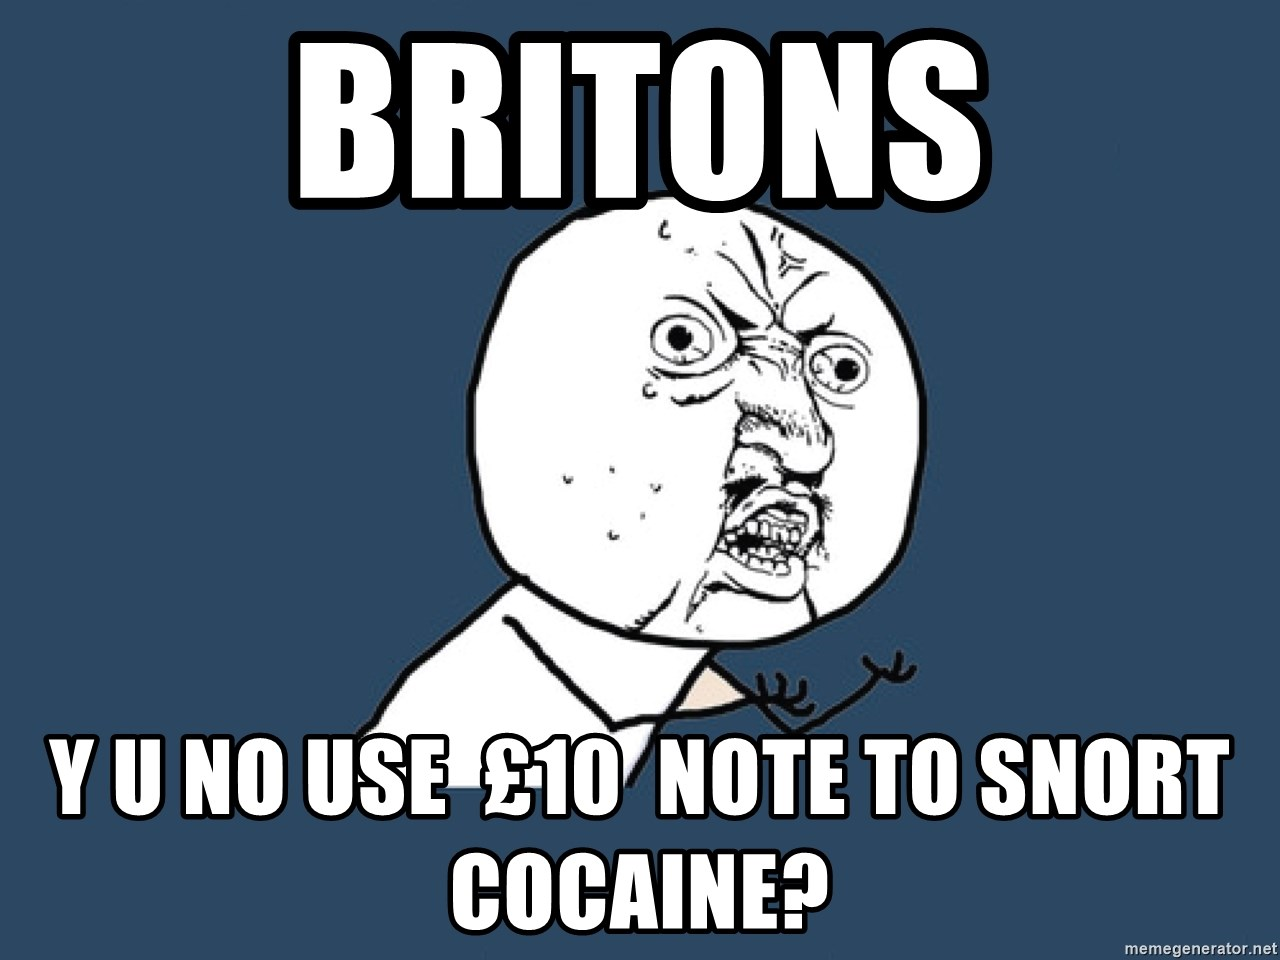 Y U No - britons y u no use  £10  note to snort cocaine?